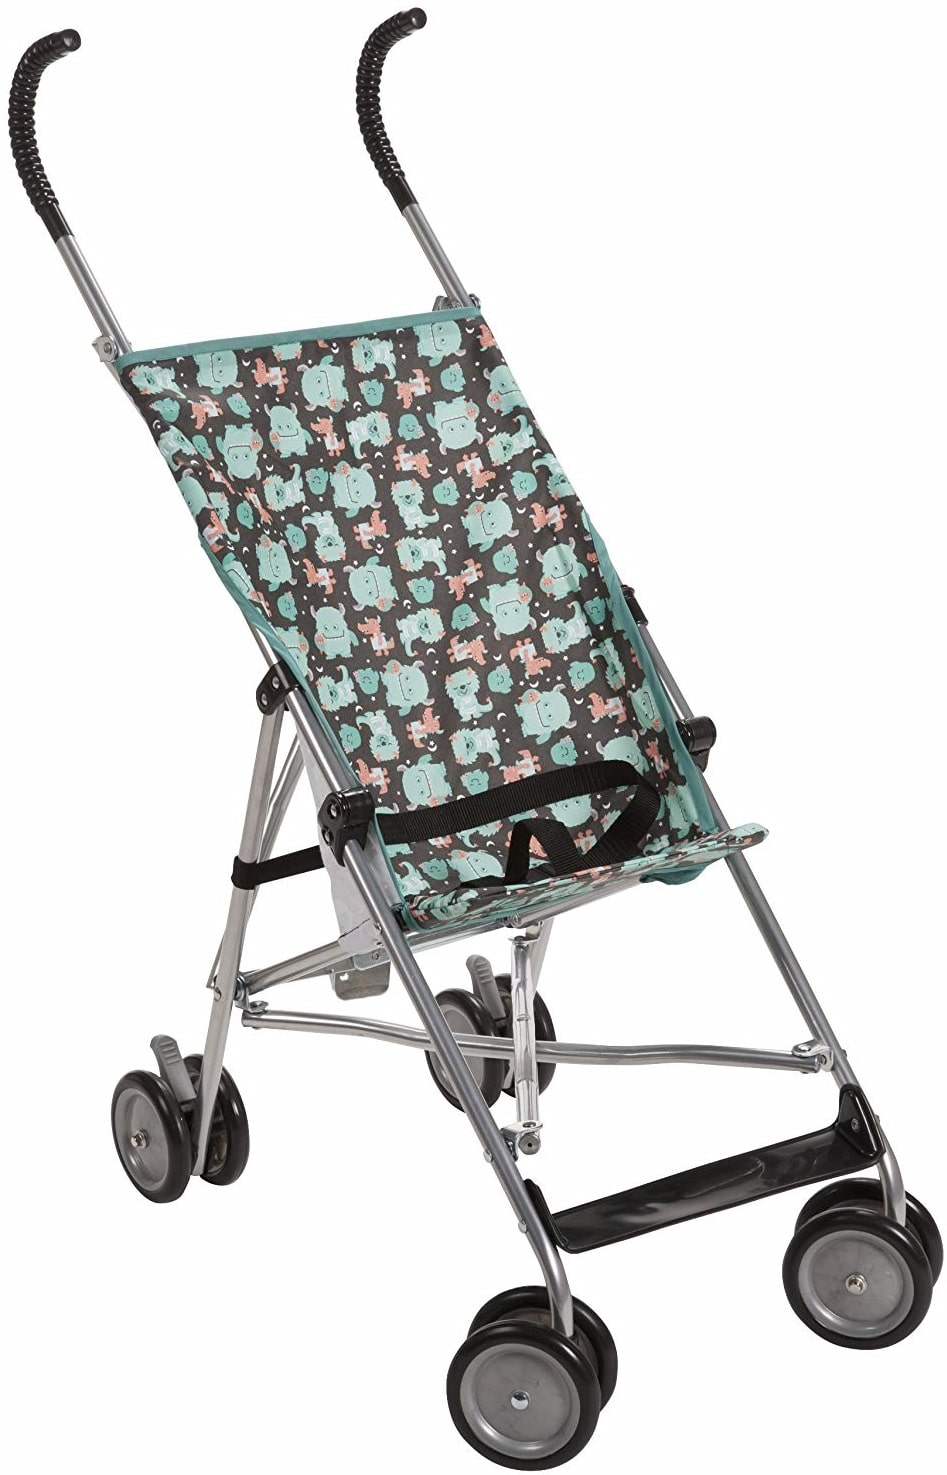 Cosco Umbrella Sleep Monsters Stroller